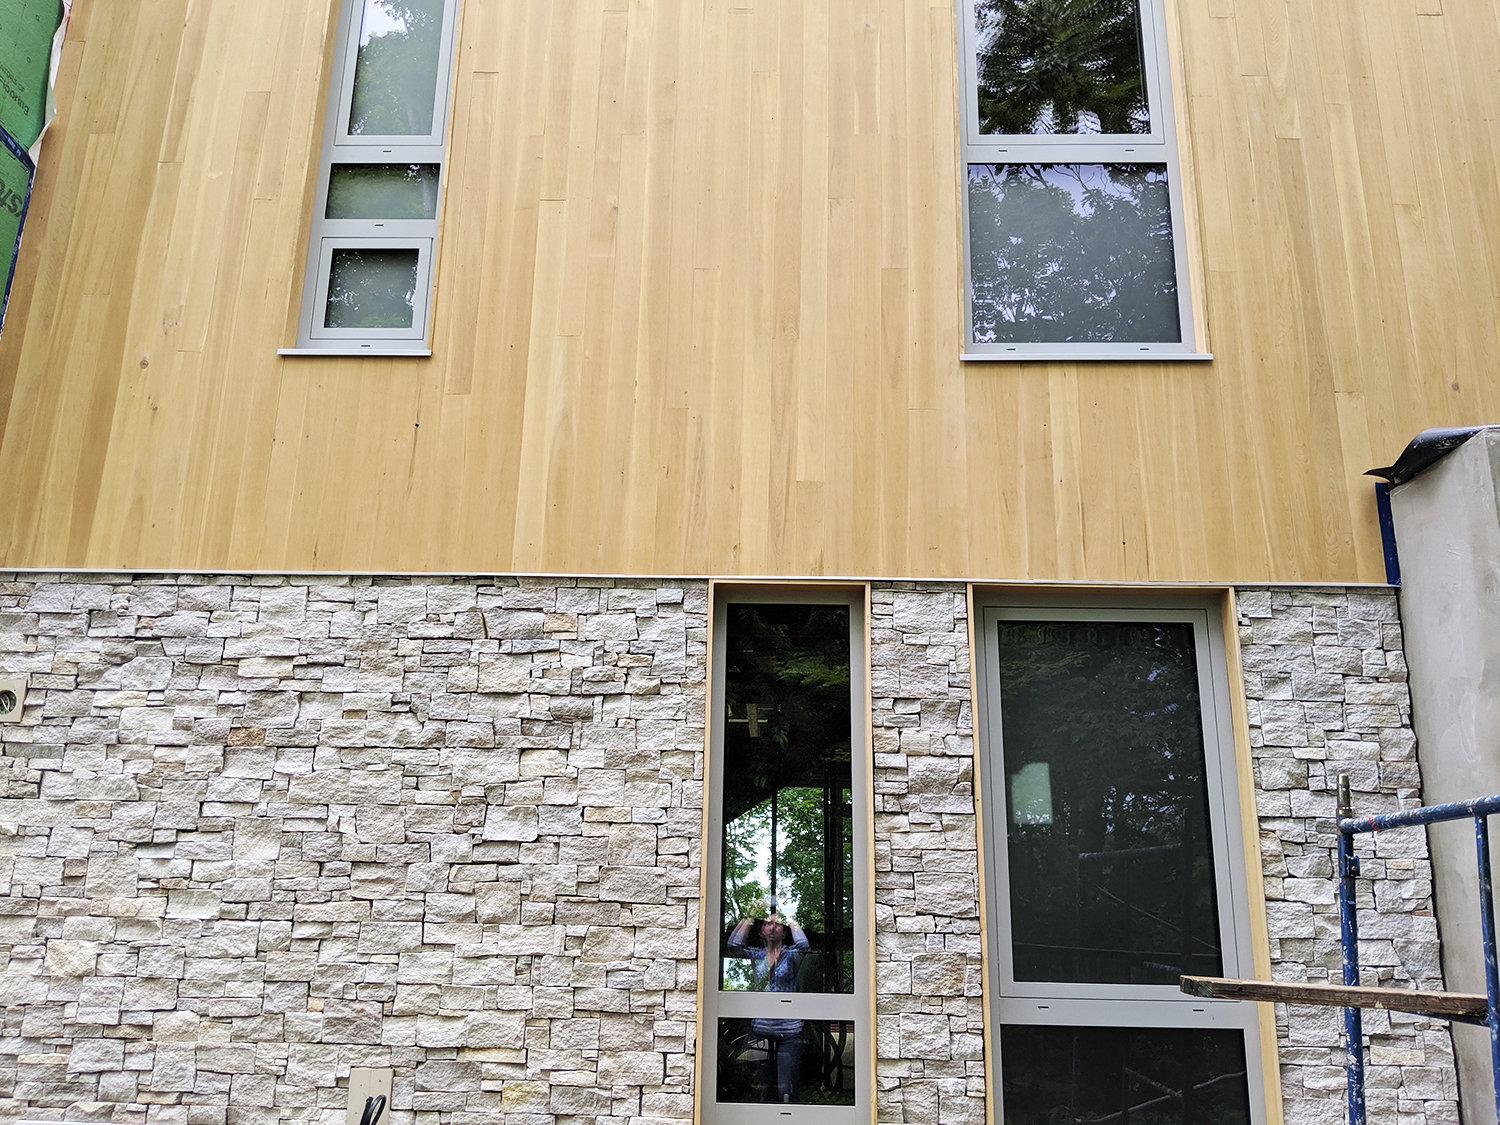 siding and stucco 1 6.14.19.jpg